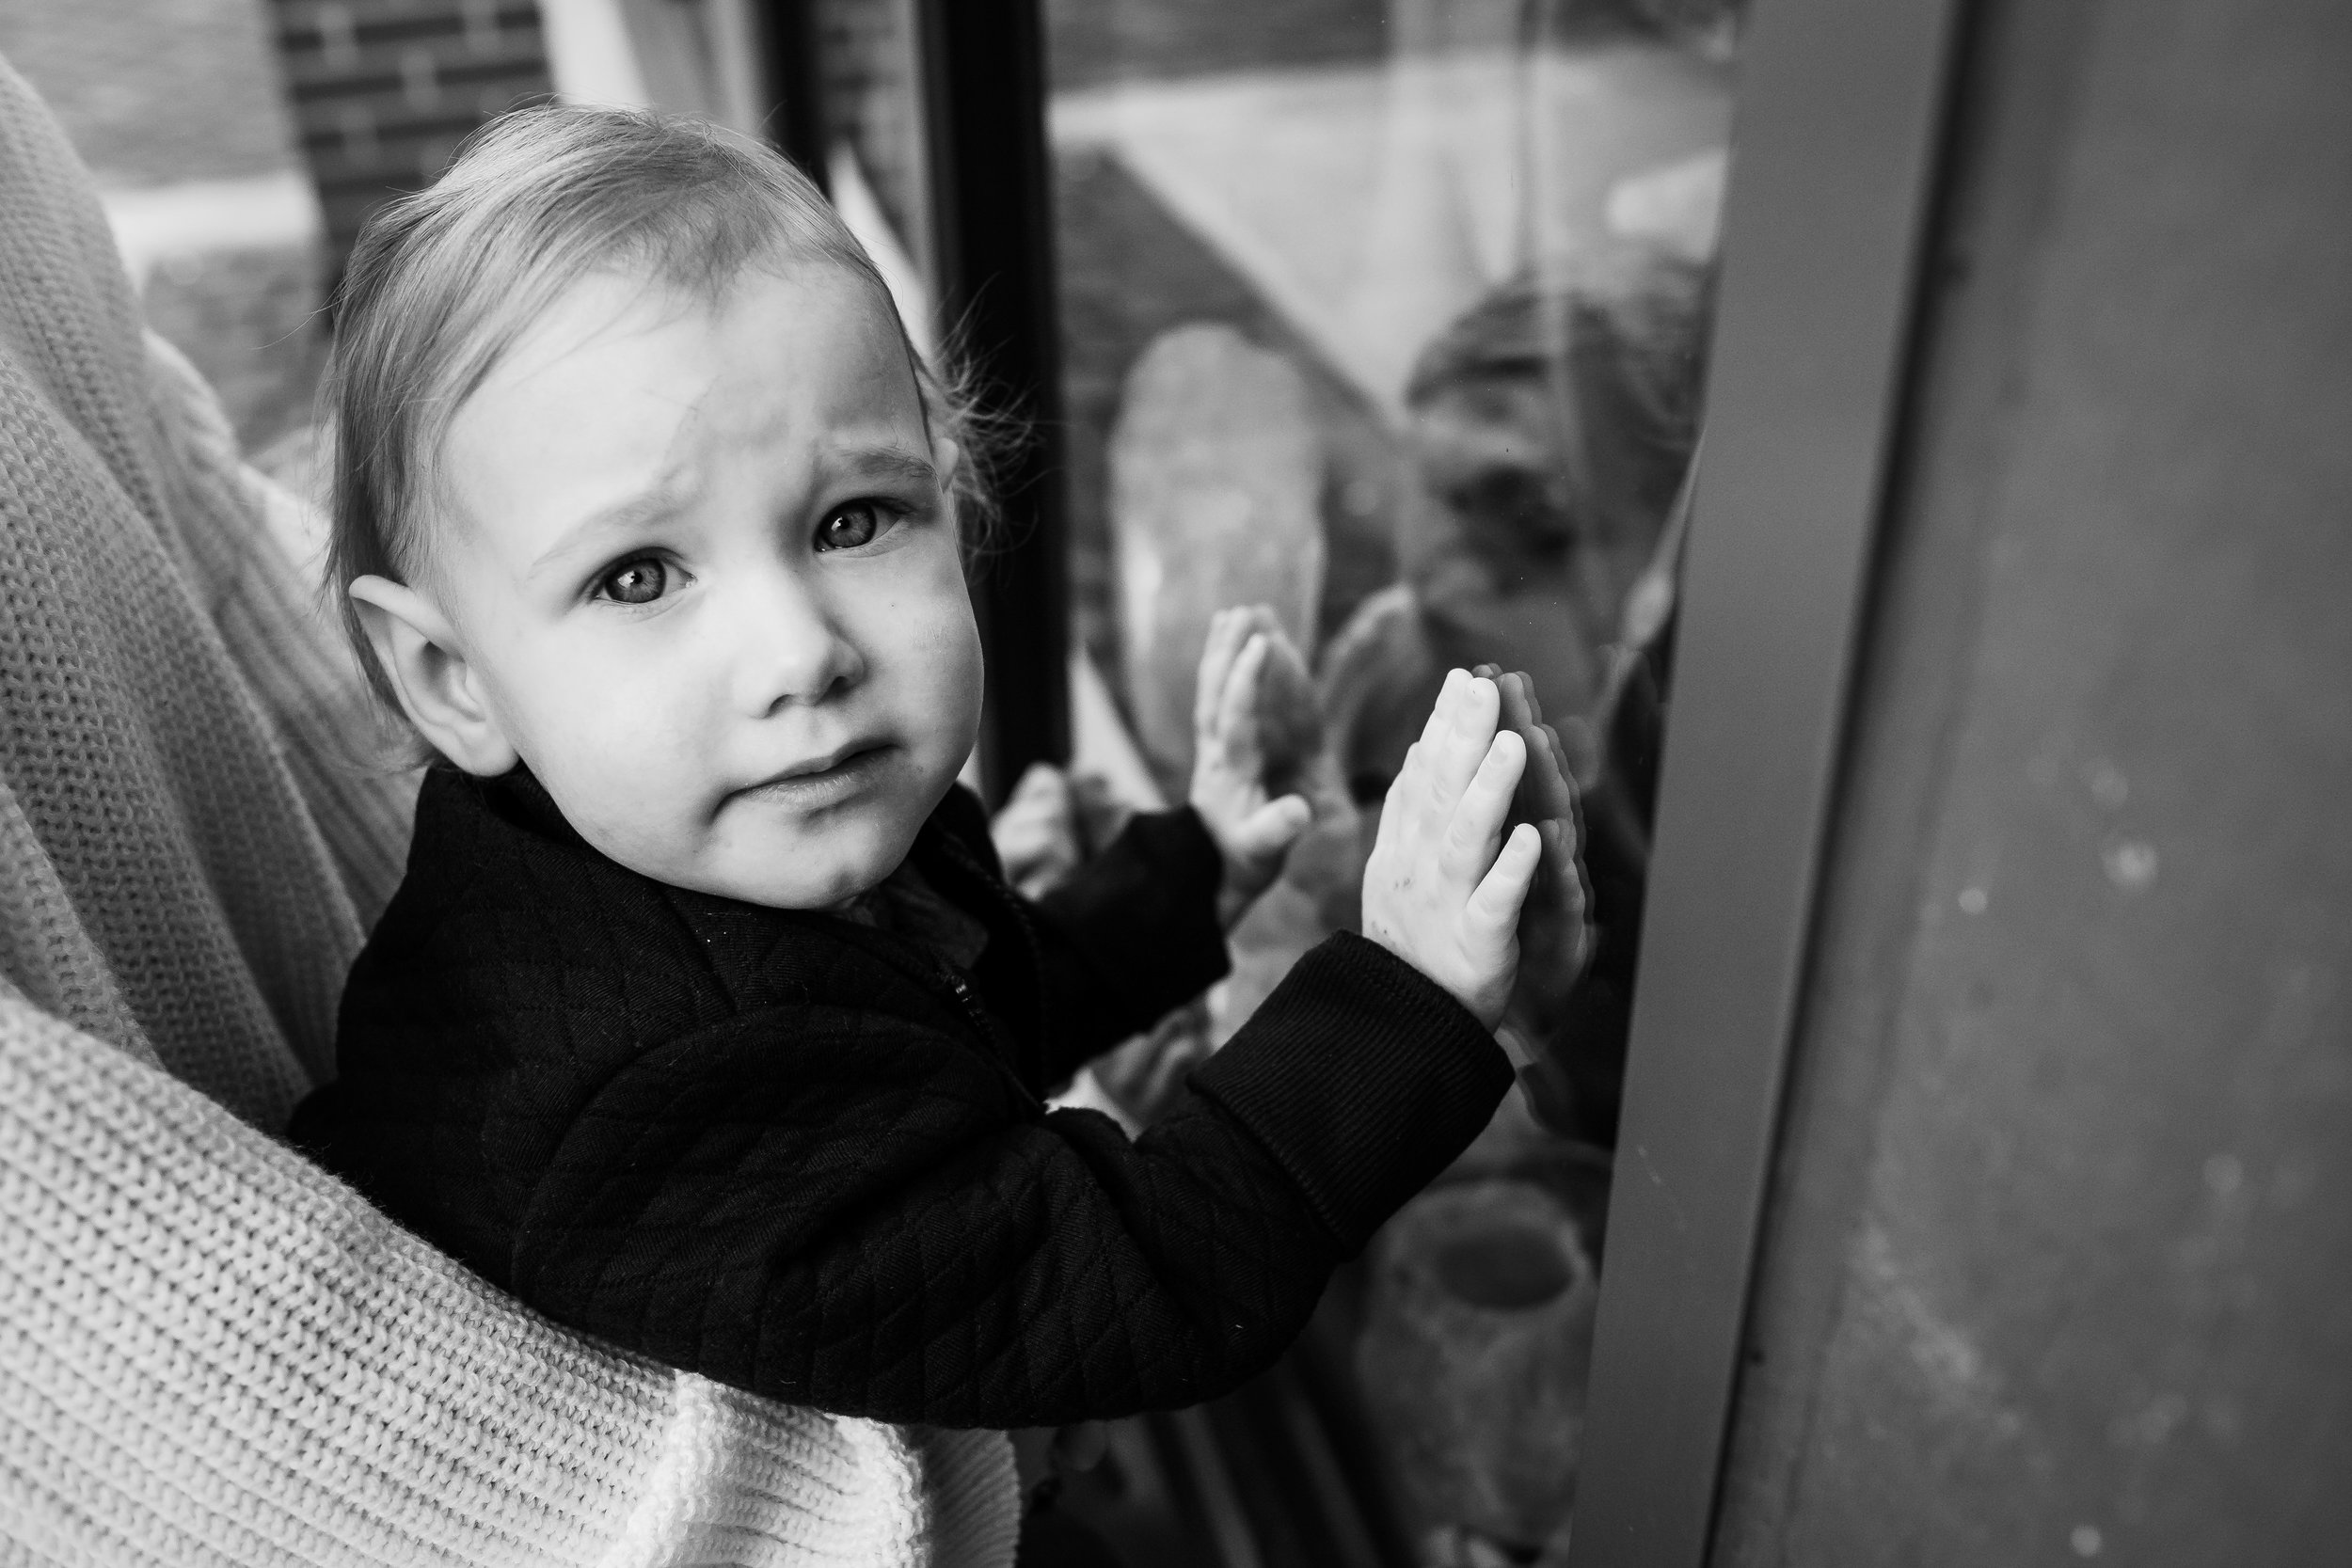 toddler-boy-window-langley-store-family